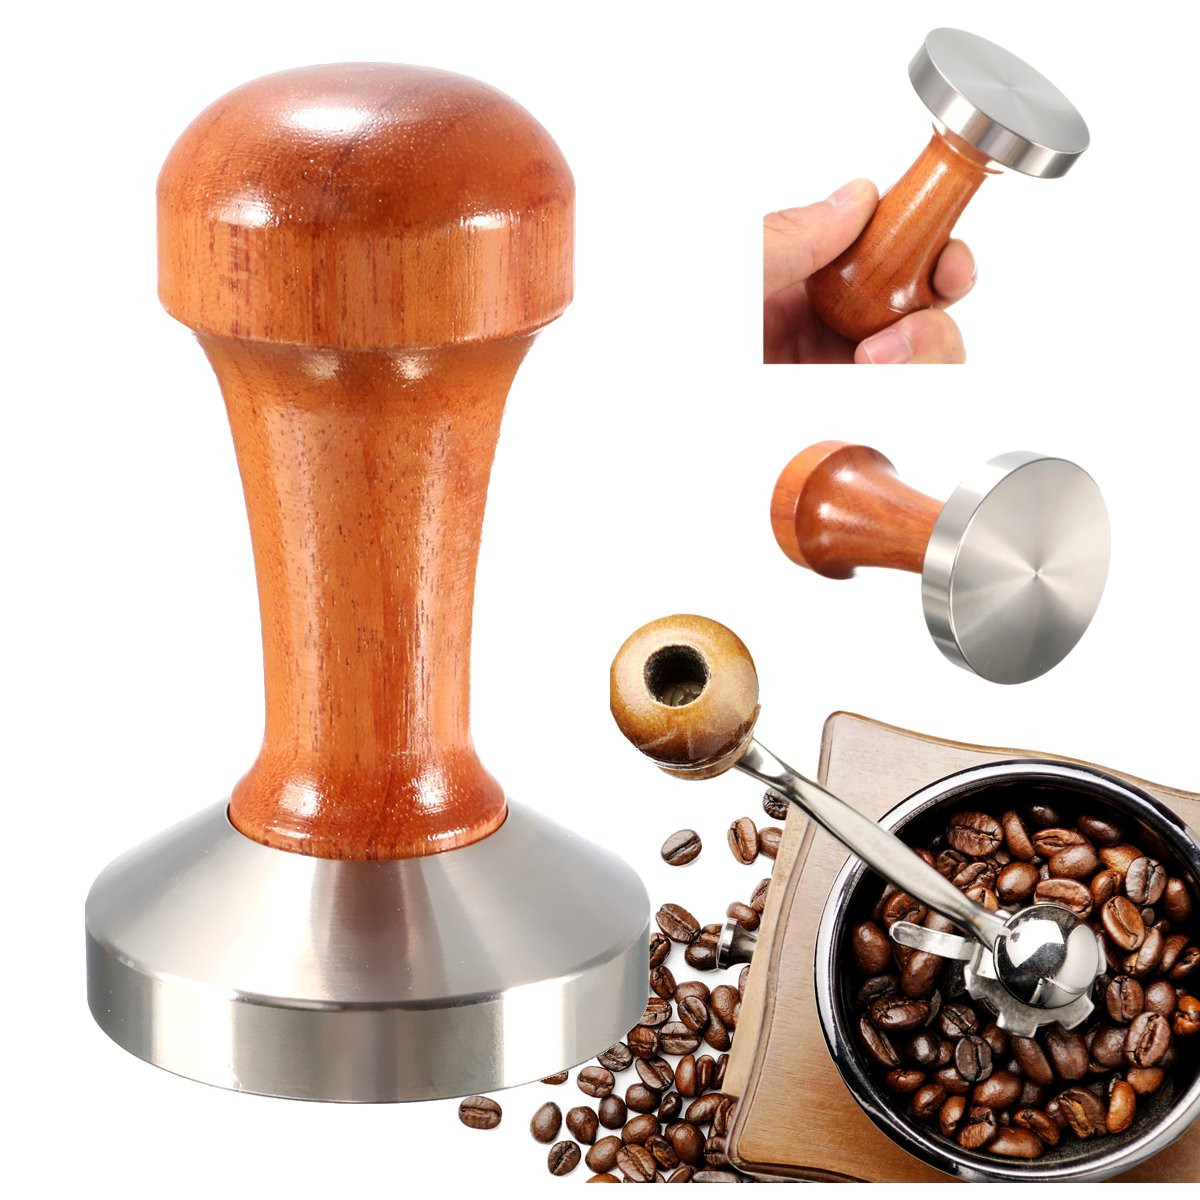 53mm Stainless Steel Cafe Coffee Tamper Bean Press for Espresso Flat Base Wooden Handle